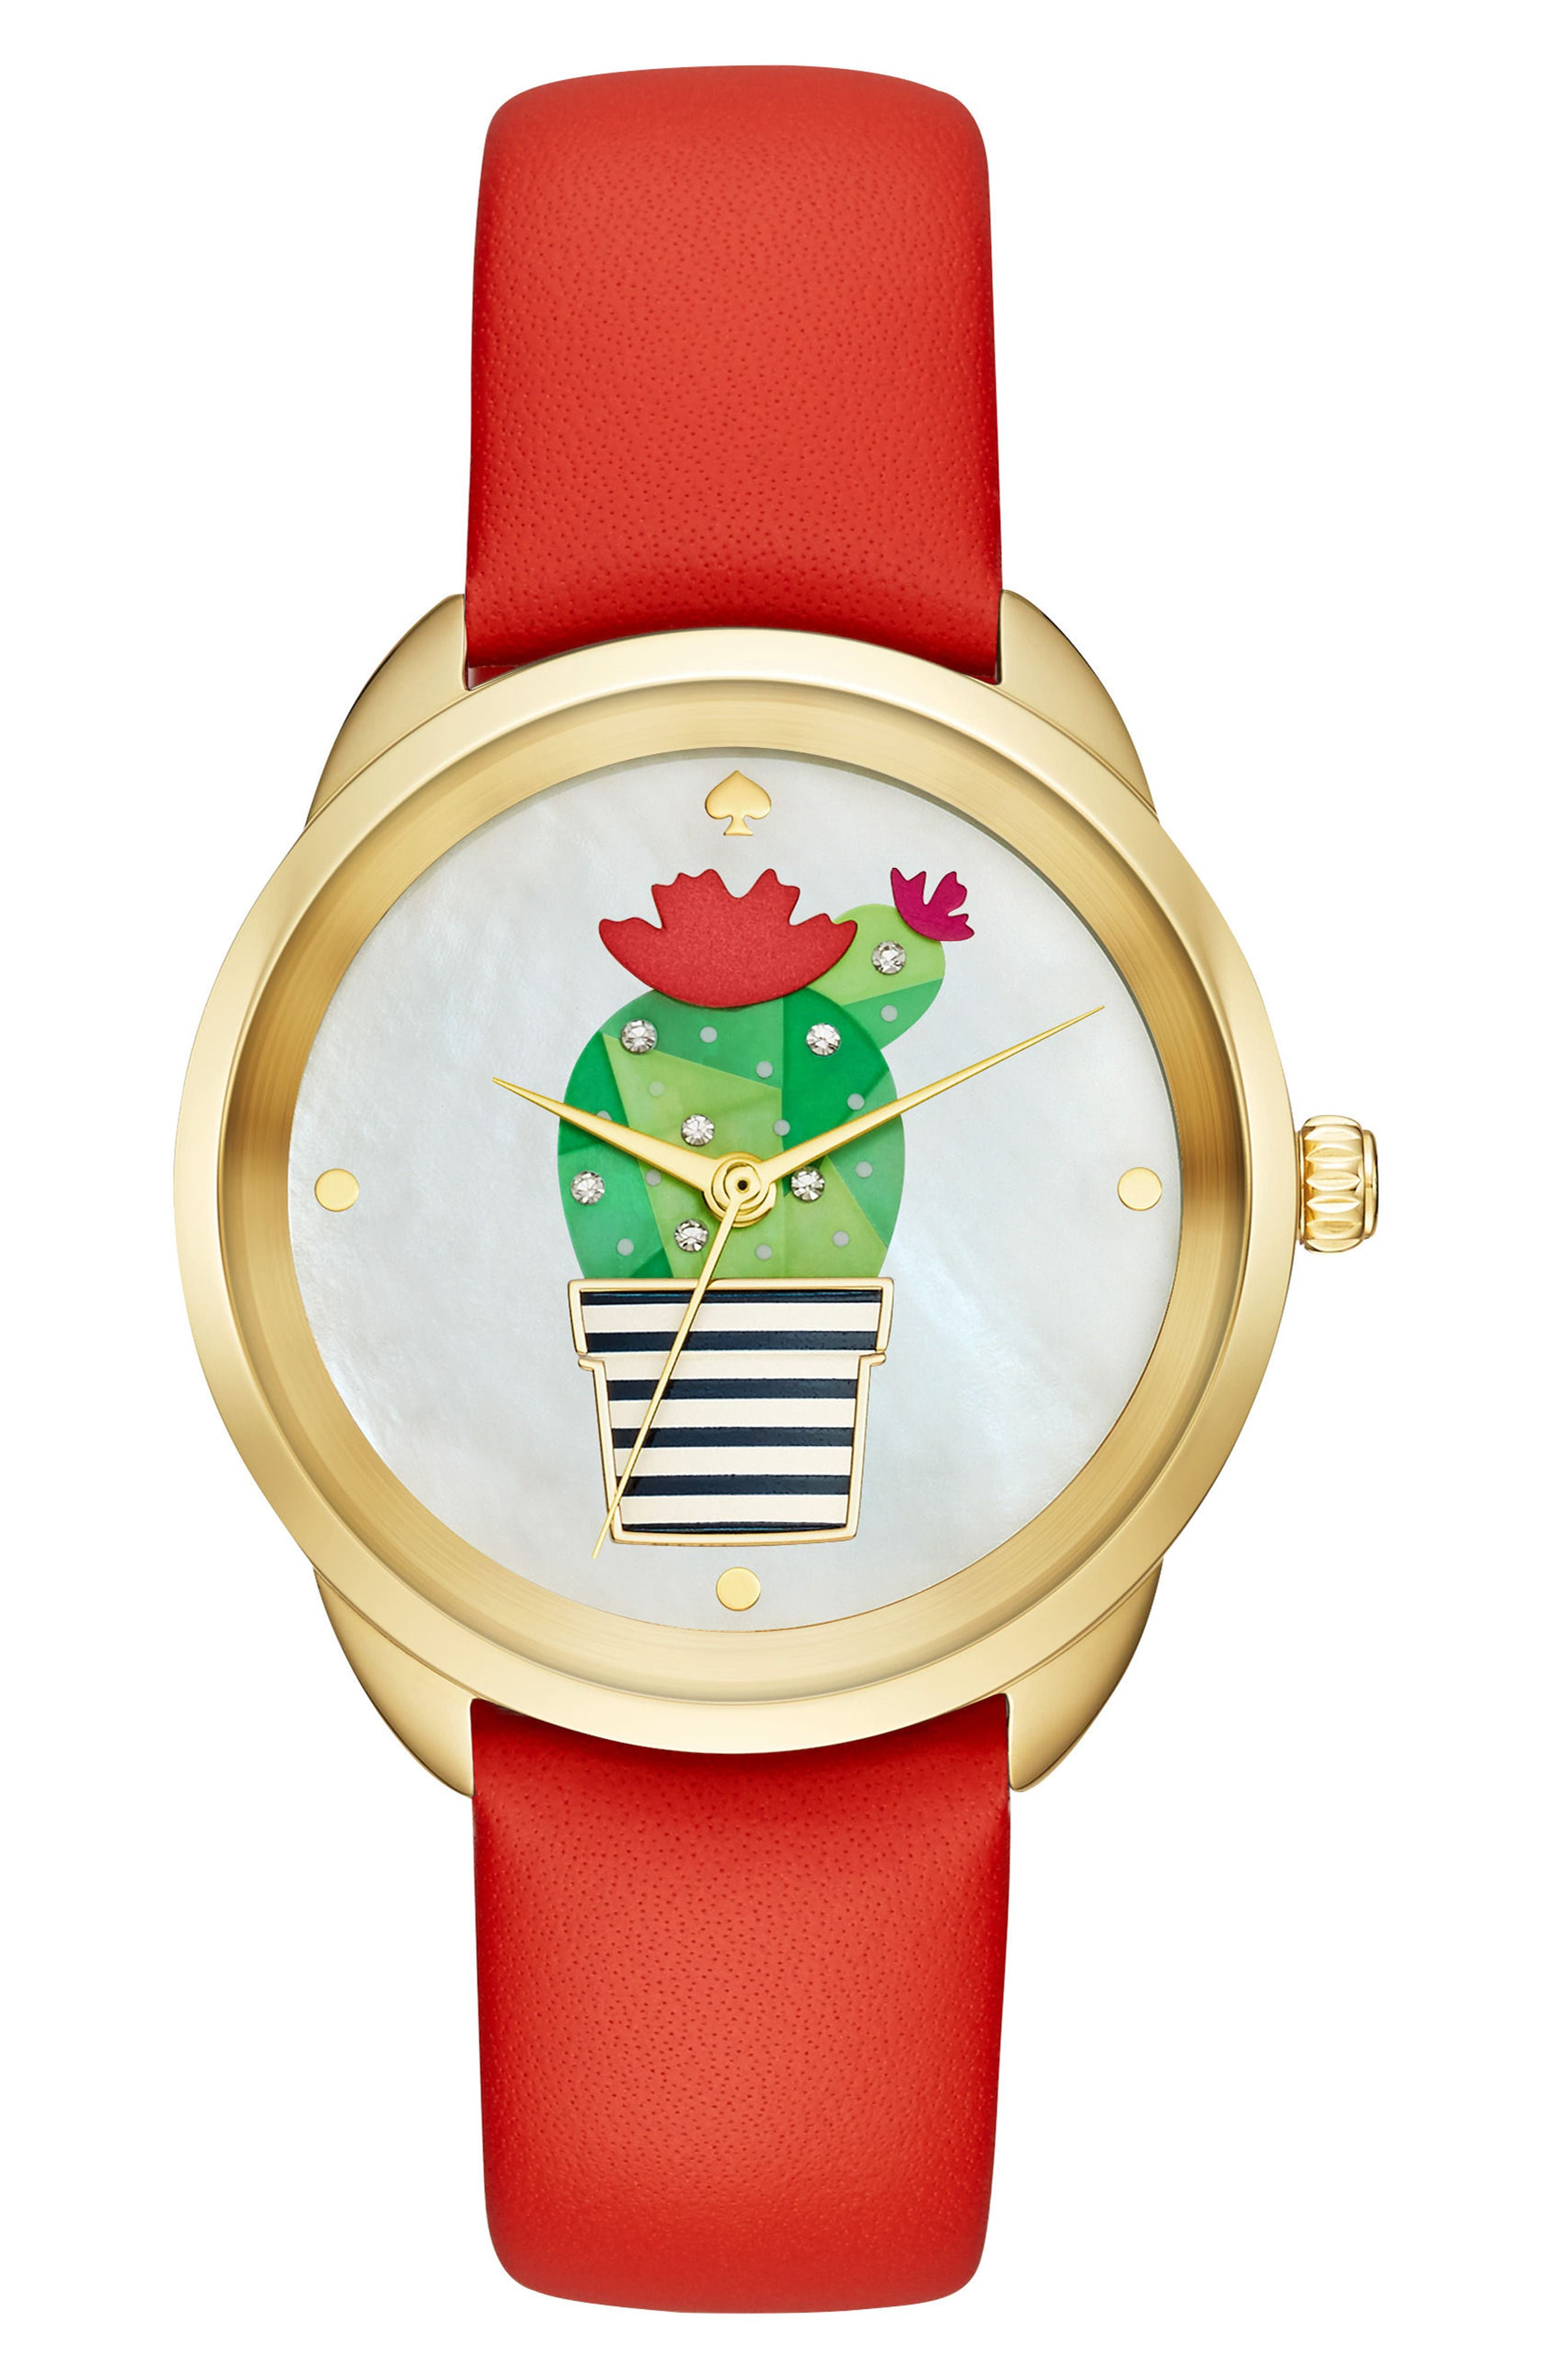 KATE SPADE NEW YORK kate spade cactus crosstown leather strap watch, 34mm, Main, color, 600